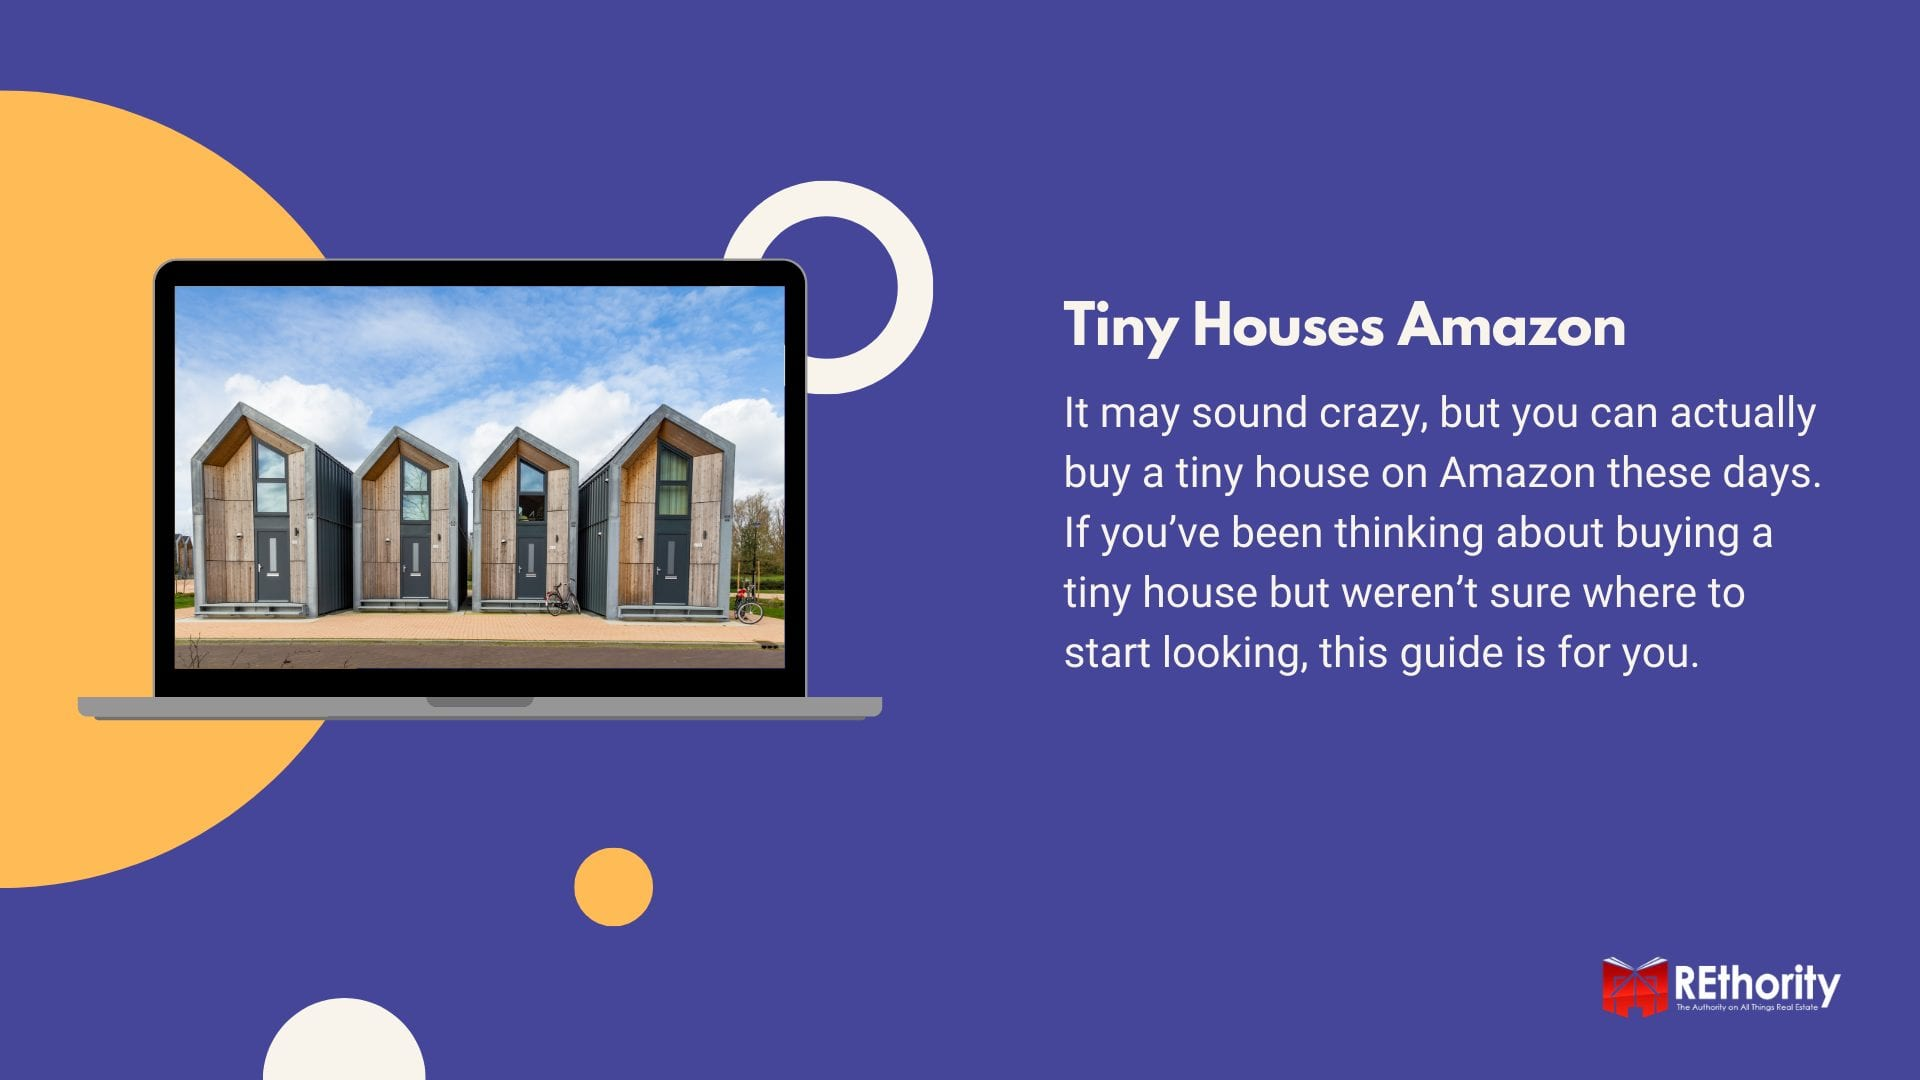 Tiny houses available on Amazon featuring a bunch of modular homes displayed on a laptop